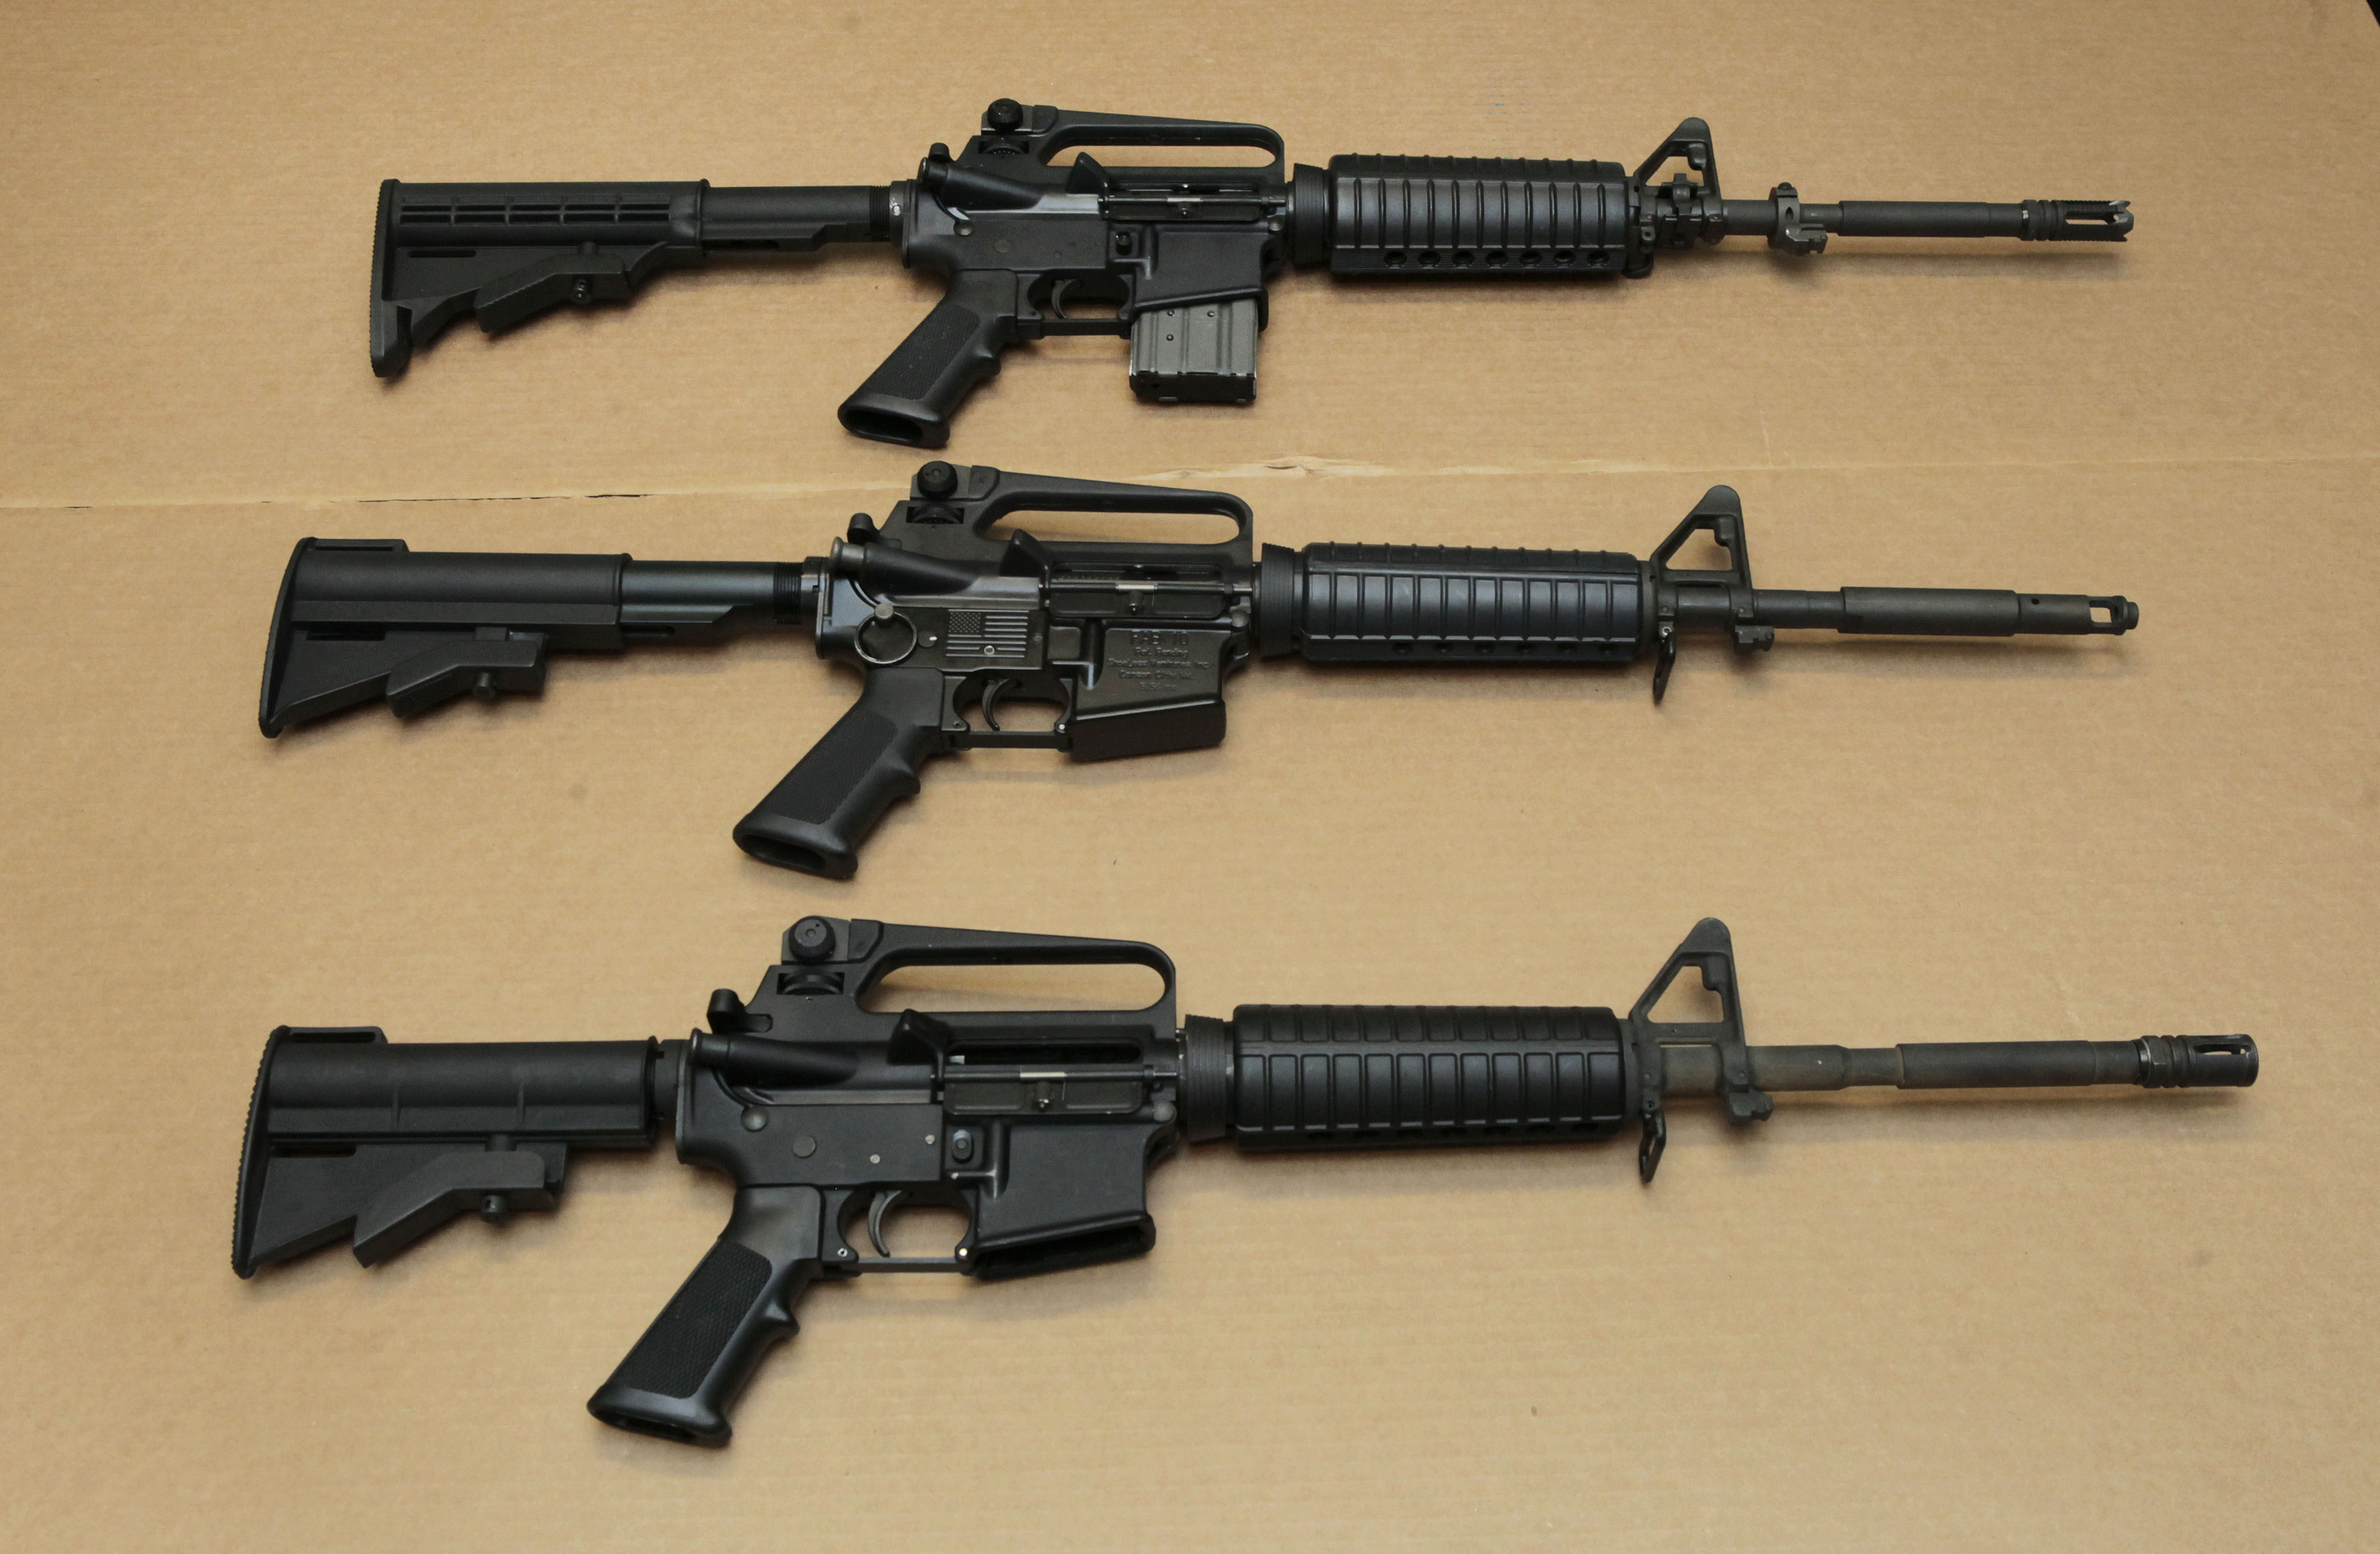 Oregon initiative would ban assault weapons, require owners to surrender certain guns